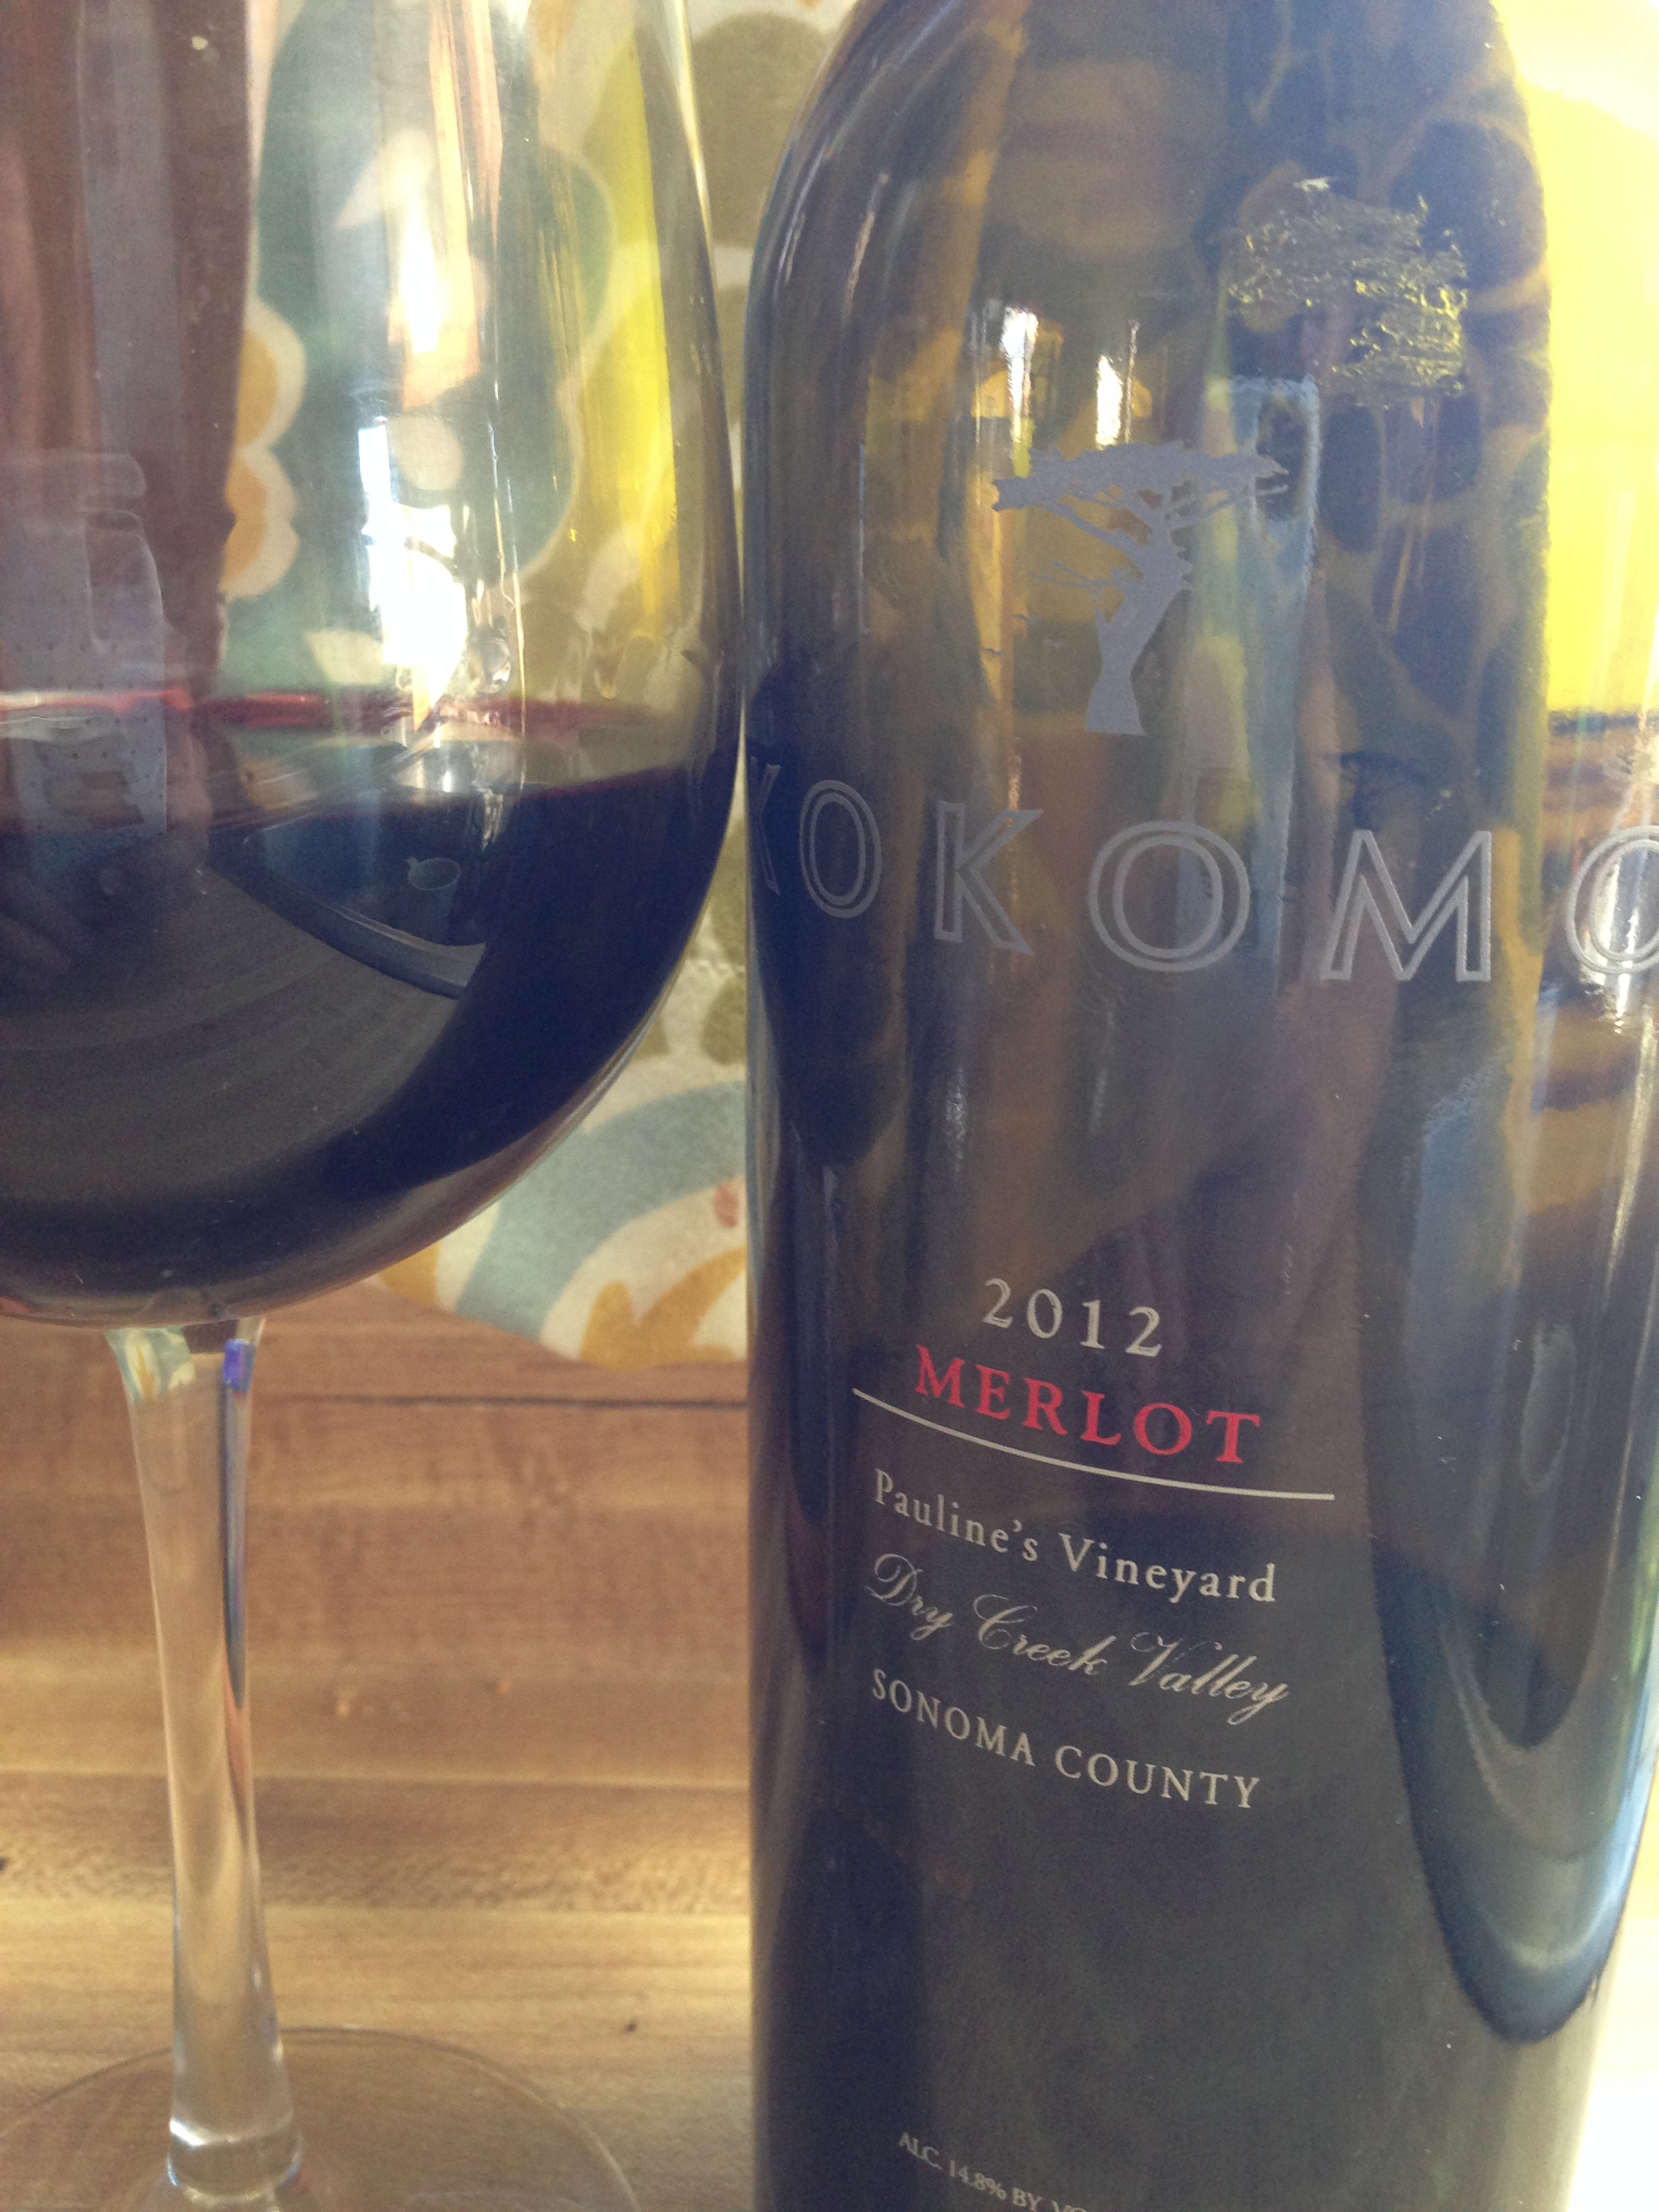 Wine Wednesday: Kokomo Wines 2012 Merlot